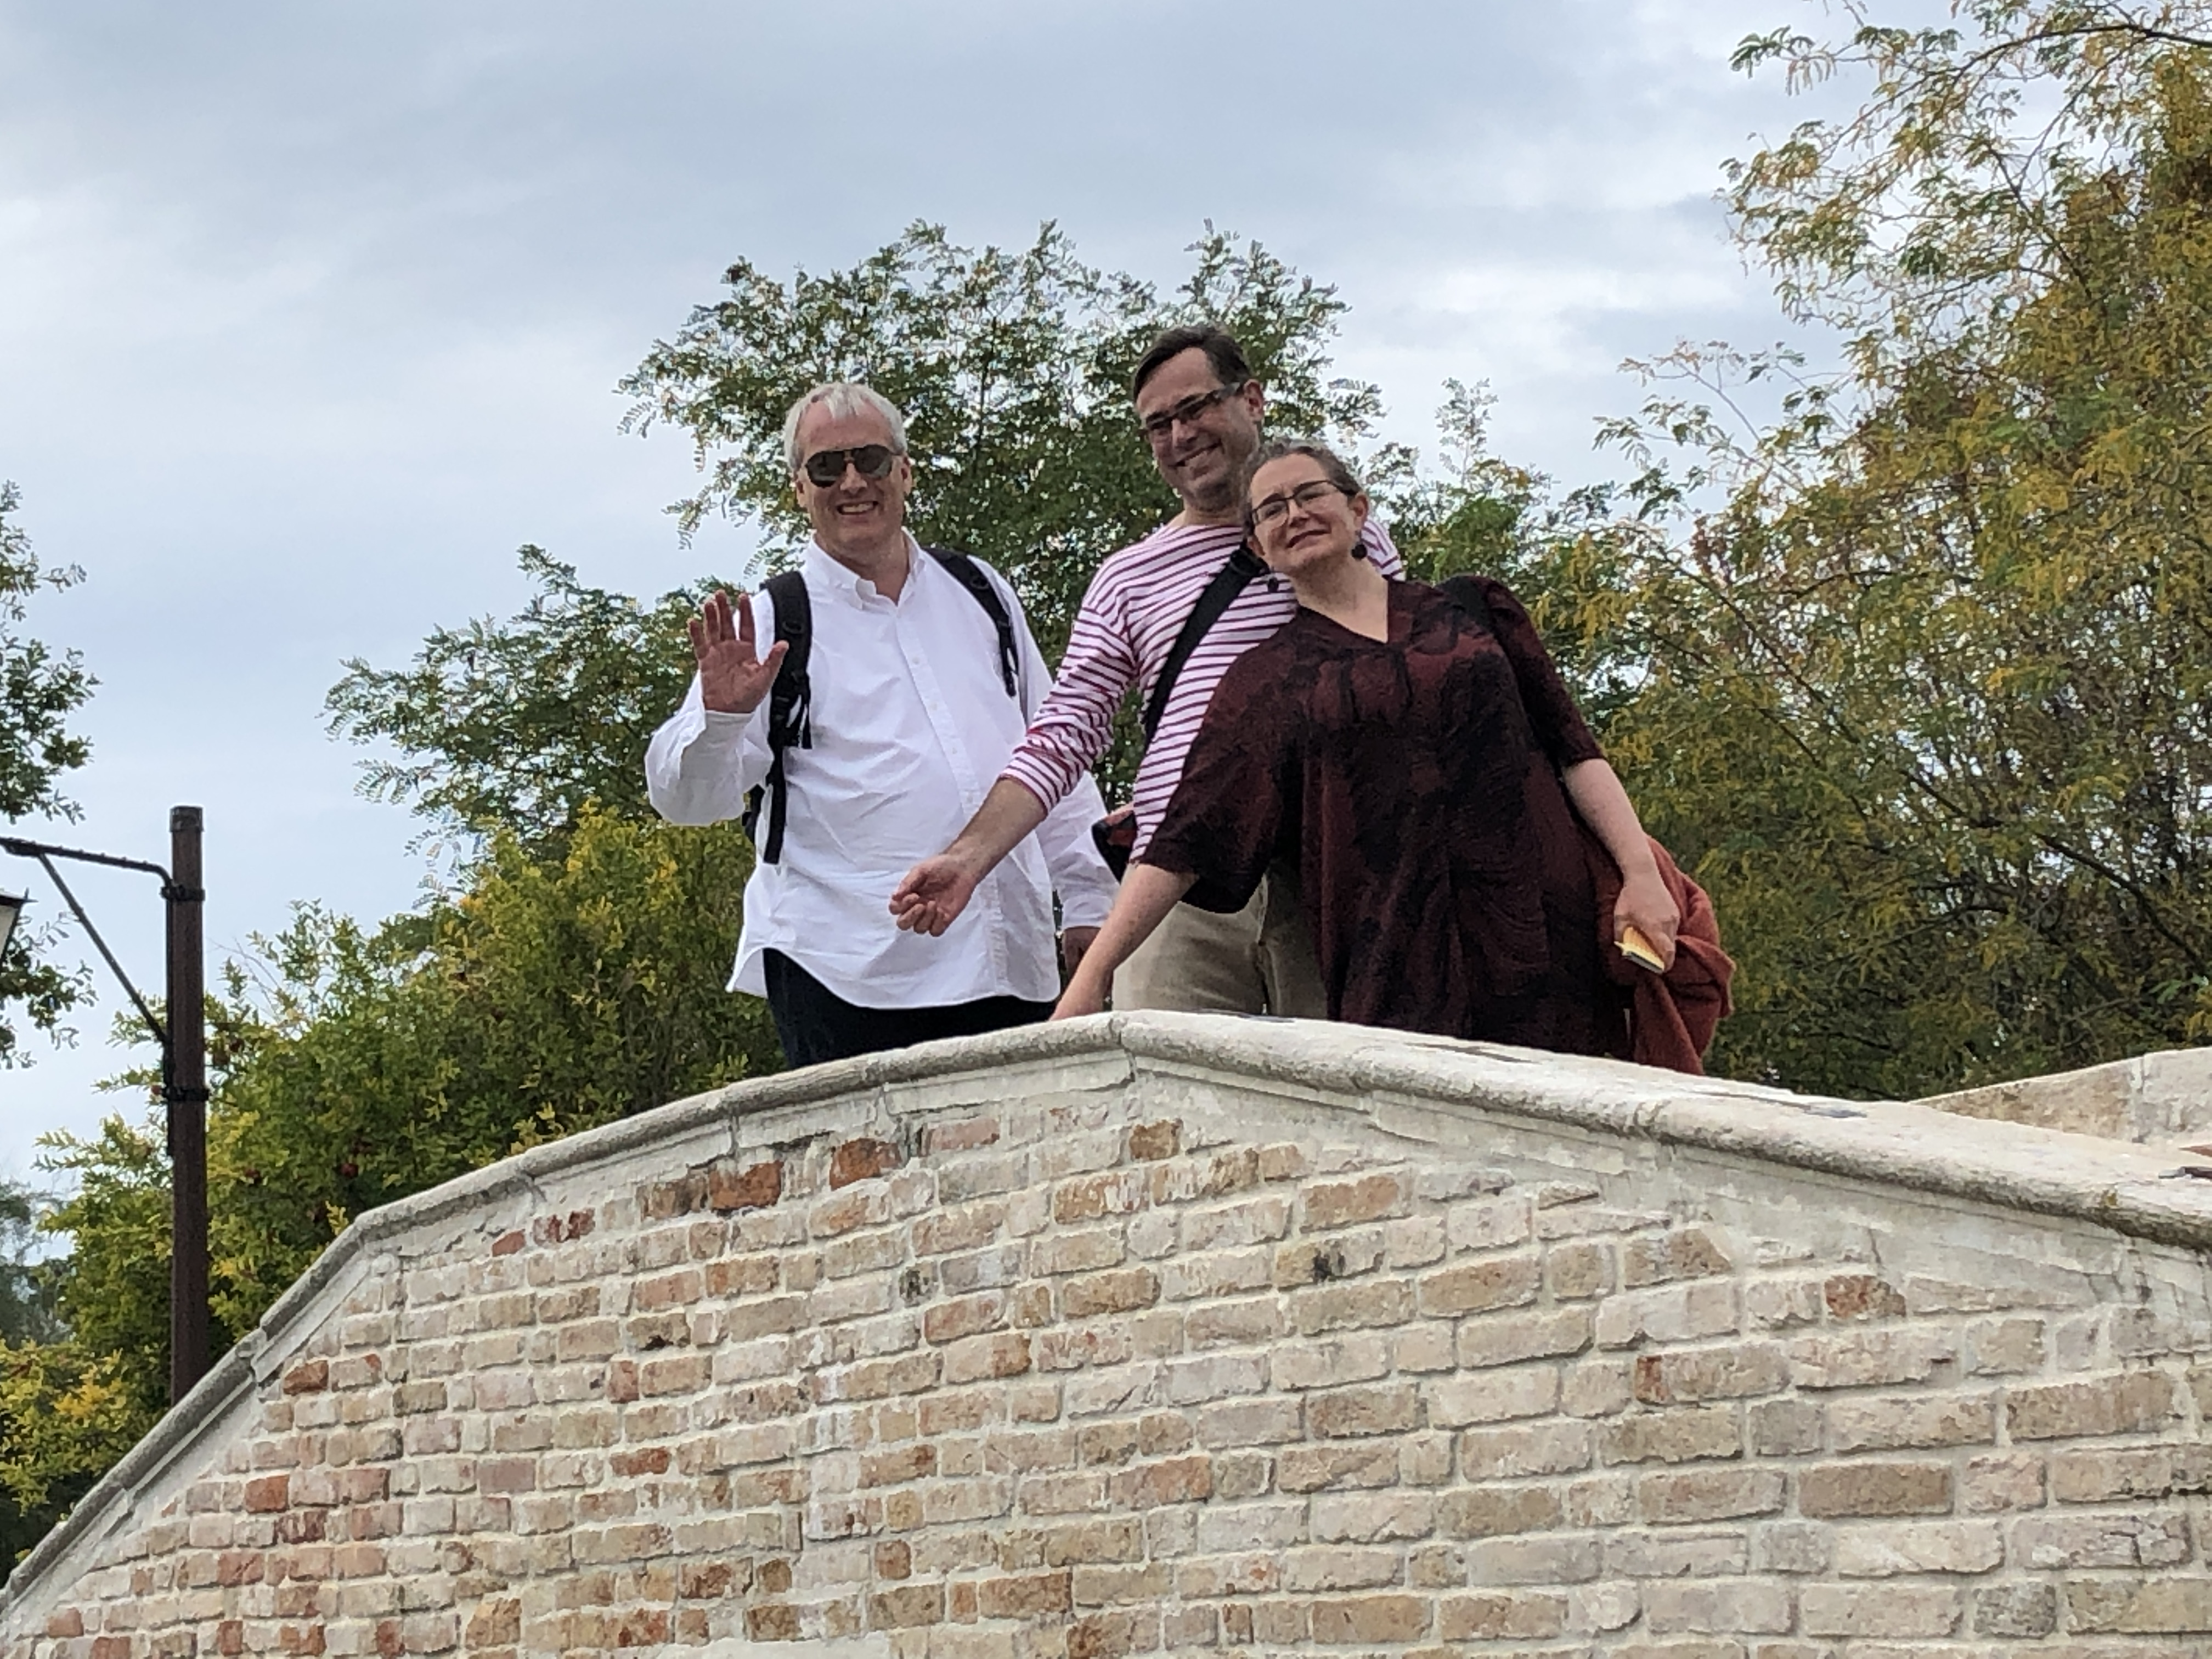 Torcello - October, 2019 - friends on the bridge!